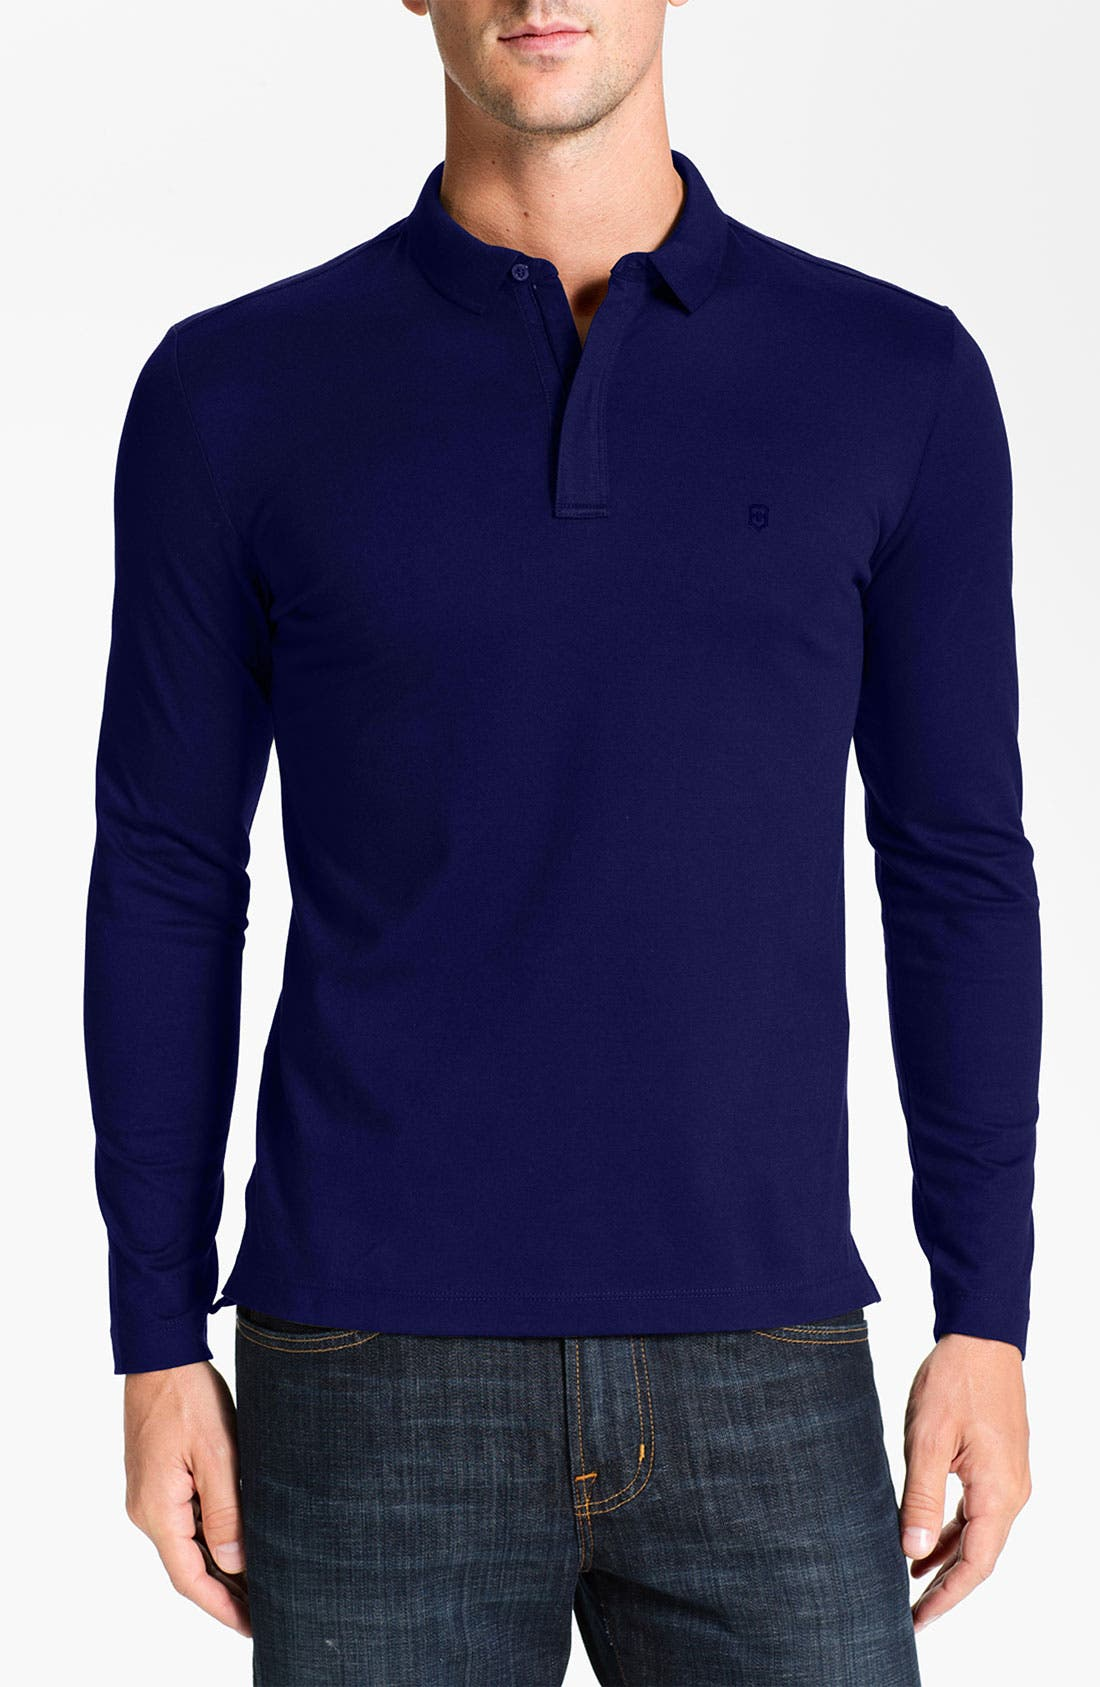 Alternate Image 1 Selected - Victorinox Swiss Army® Piqué Zip Polo (Online Exclusive)